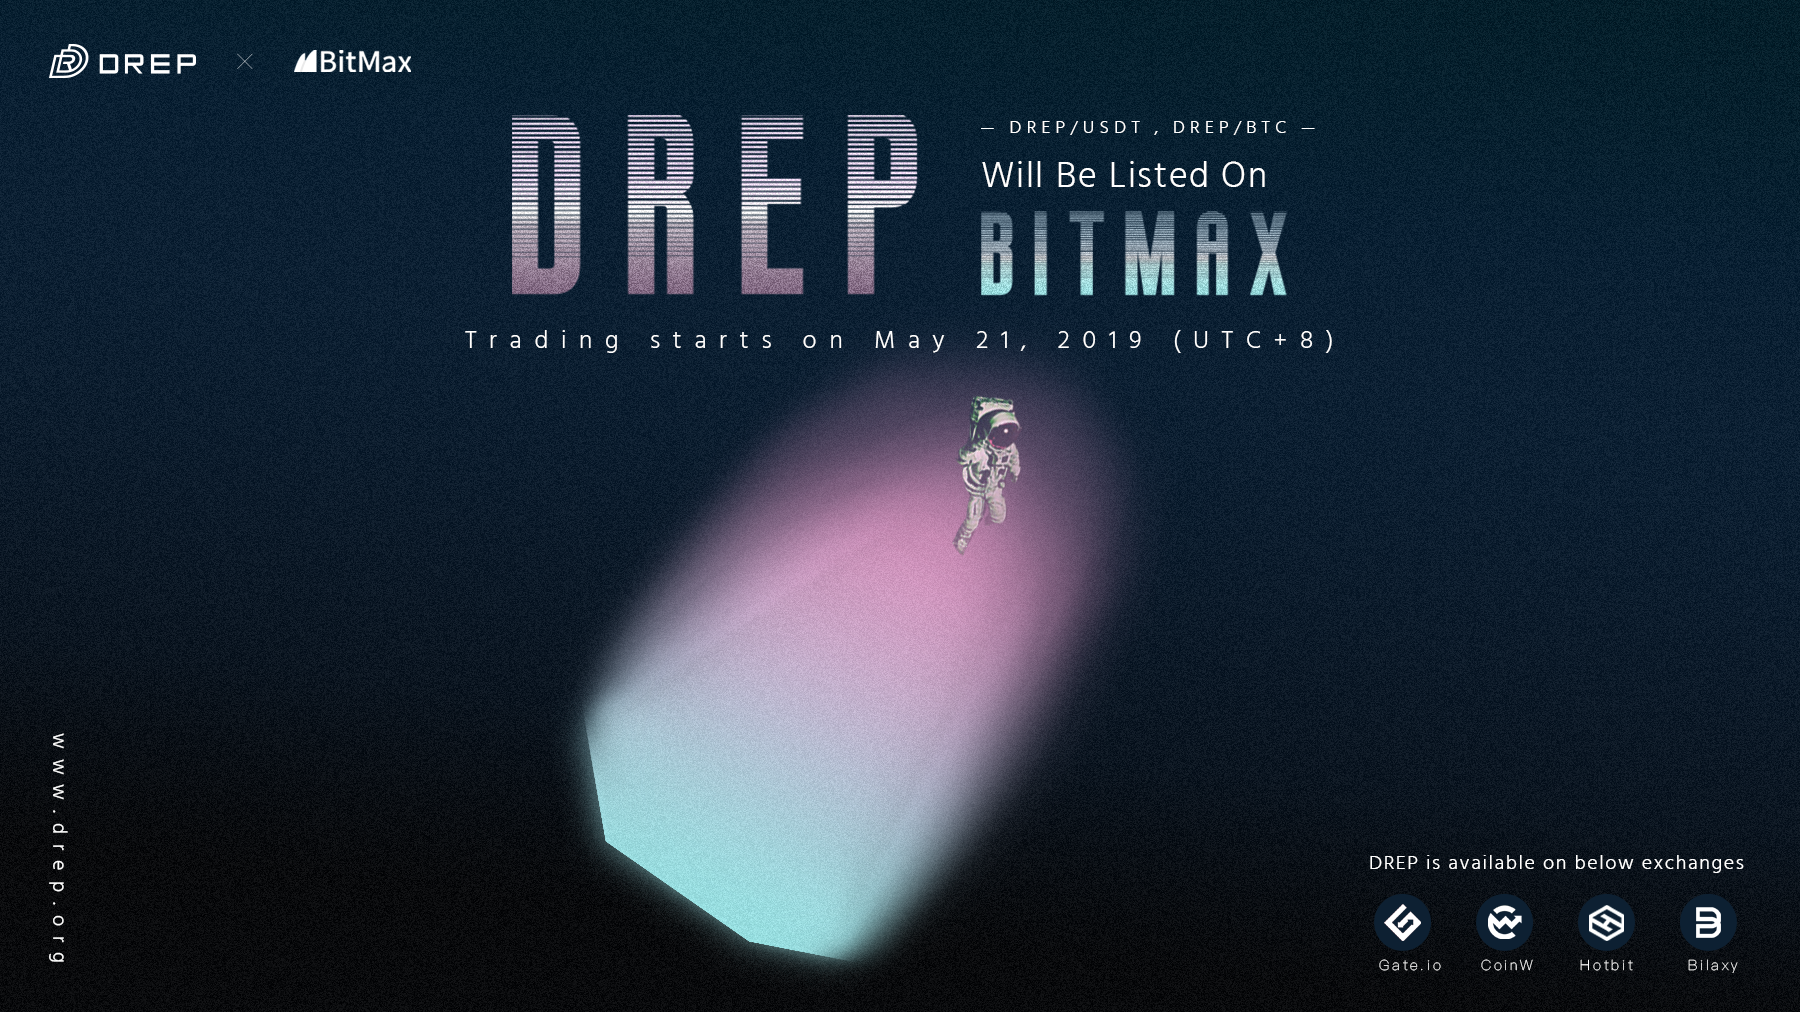 DREP on BitMax io on May 21 — Trading Activities Announced